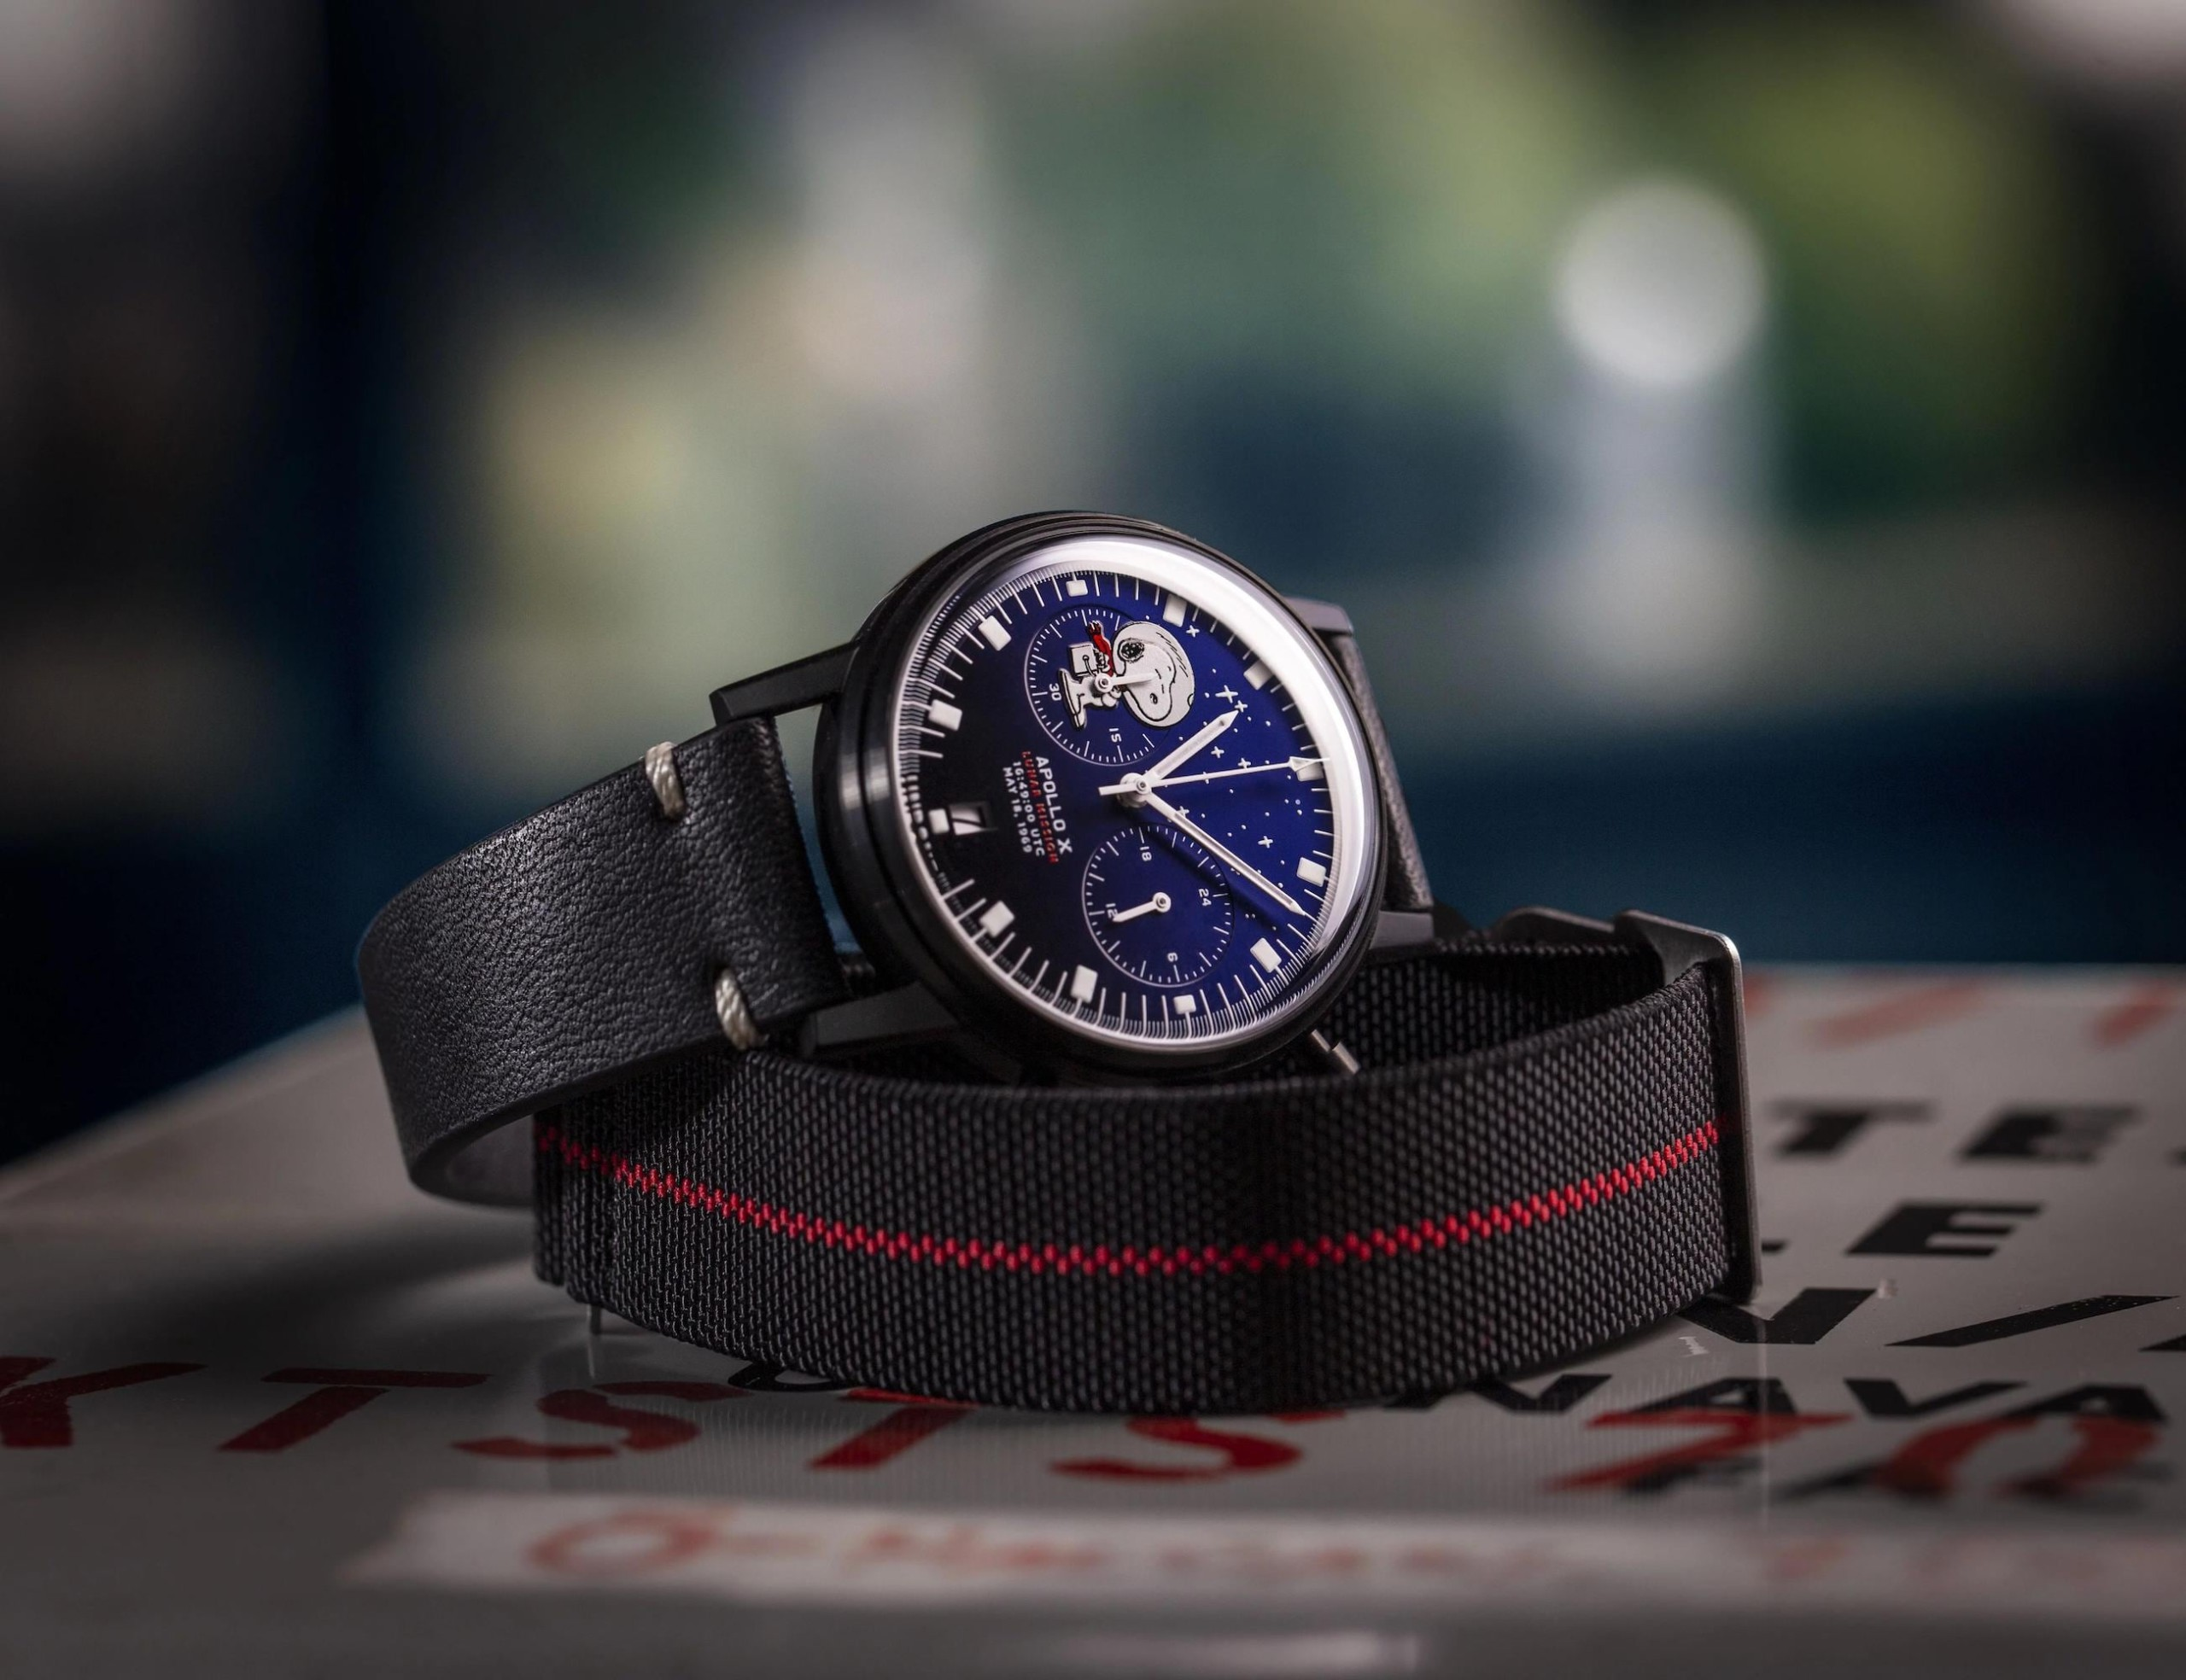 Undone LUNAR MISSION Apollo Tribute Watches pay homage to space exploration